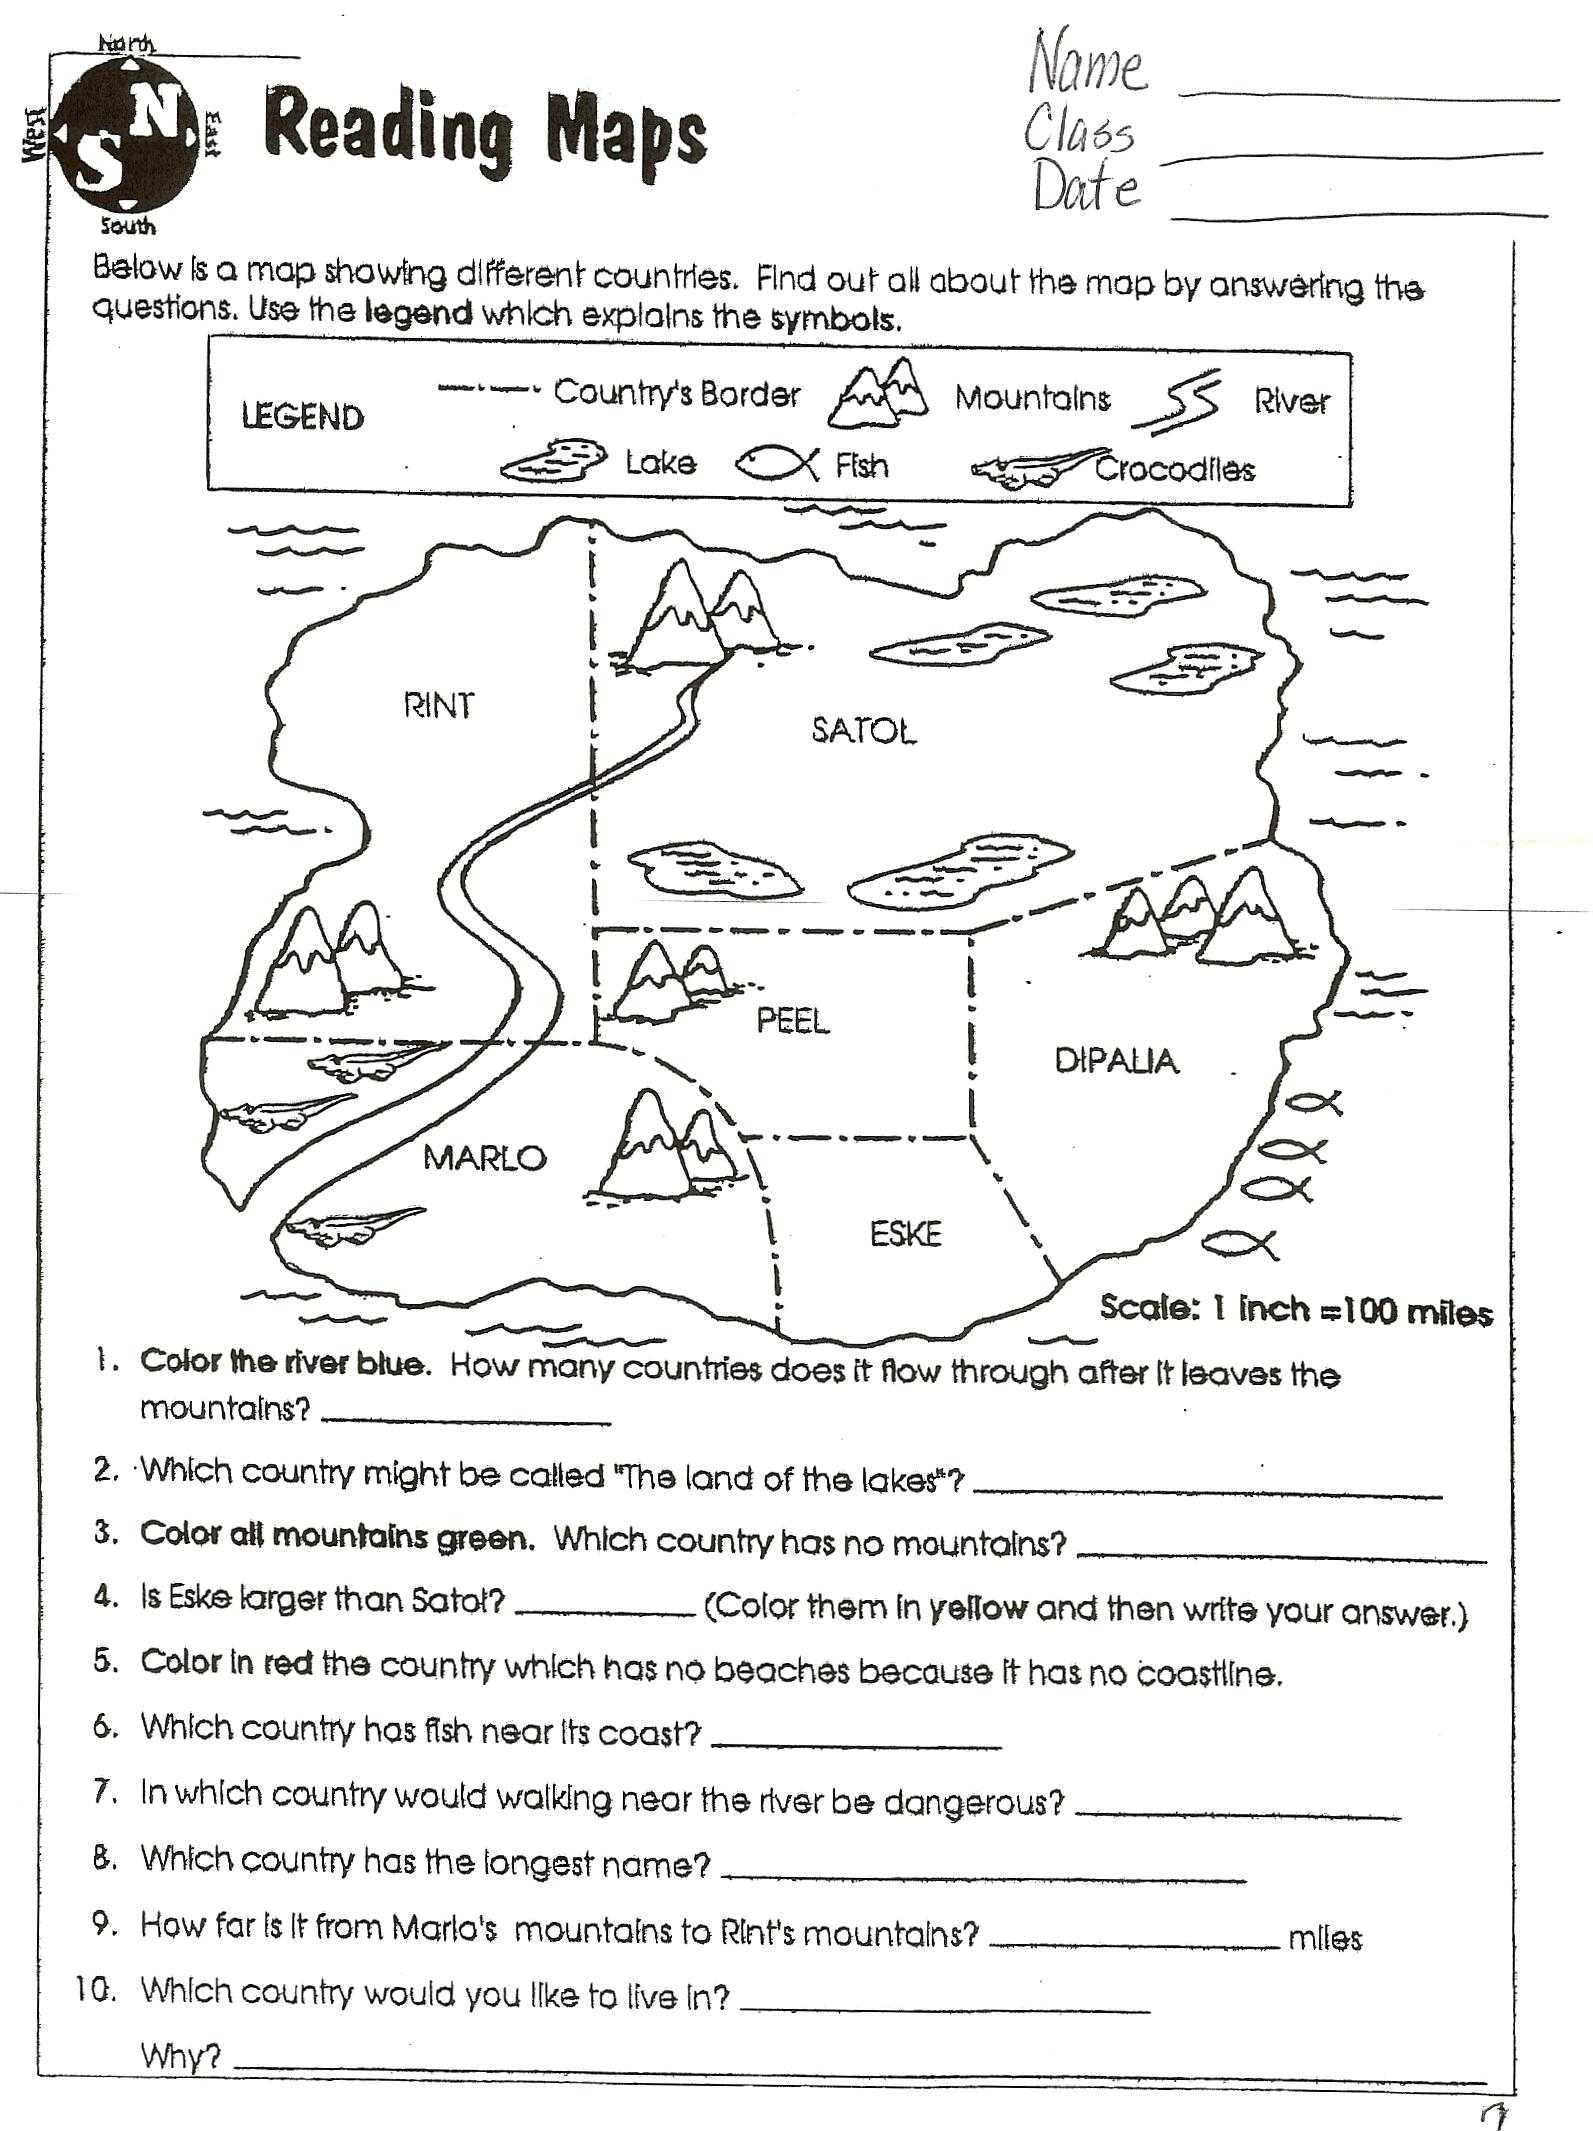 Worksheet Factoring Trinomials Answers Key and Abeka Curriculum Worksheets Breadandhearth